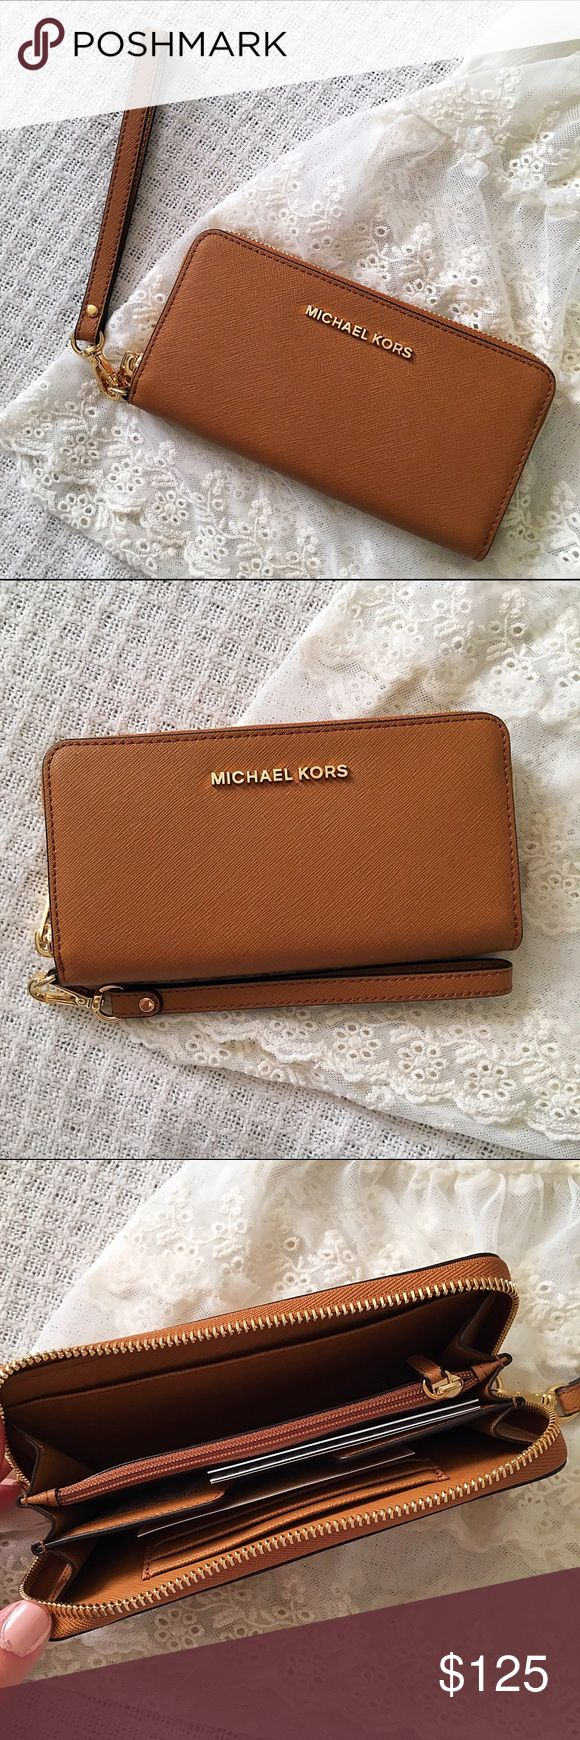 Michael Kors Jet Set Tech Wallet/Wristlet Authentic MK tech wallet/wristlet, brand new with tags. Gorgeous camel color that will go with any purse with gold detailing and lettering. Fits most smartphones, has several credit card pockets, pocket sleeves, sleeves for bills, and a coin sleeve. Wristlet strap is removable so it can be used interchangeably as a wallet or wristlet. Make an offer! Will ship next business day.  Michael Kors Bags